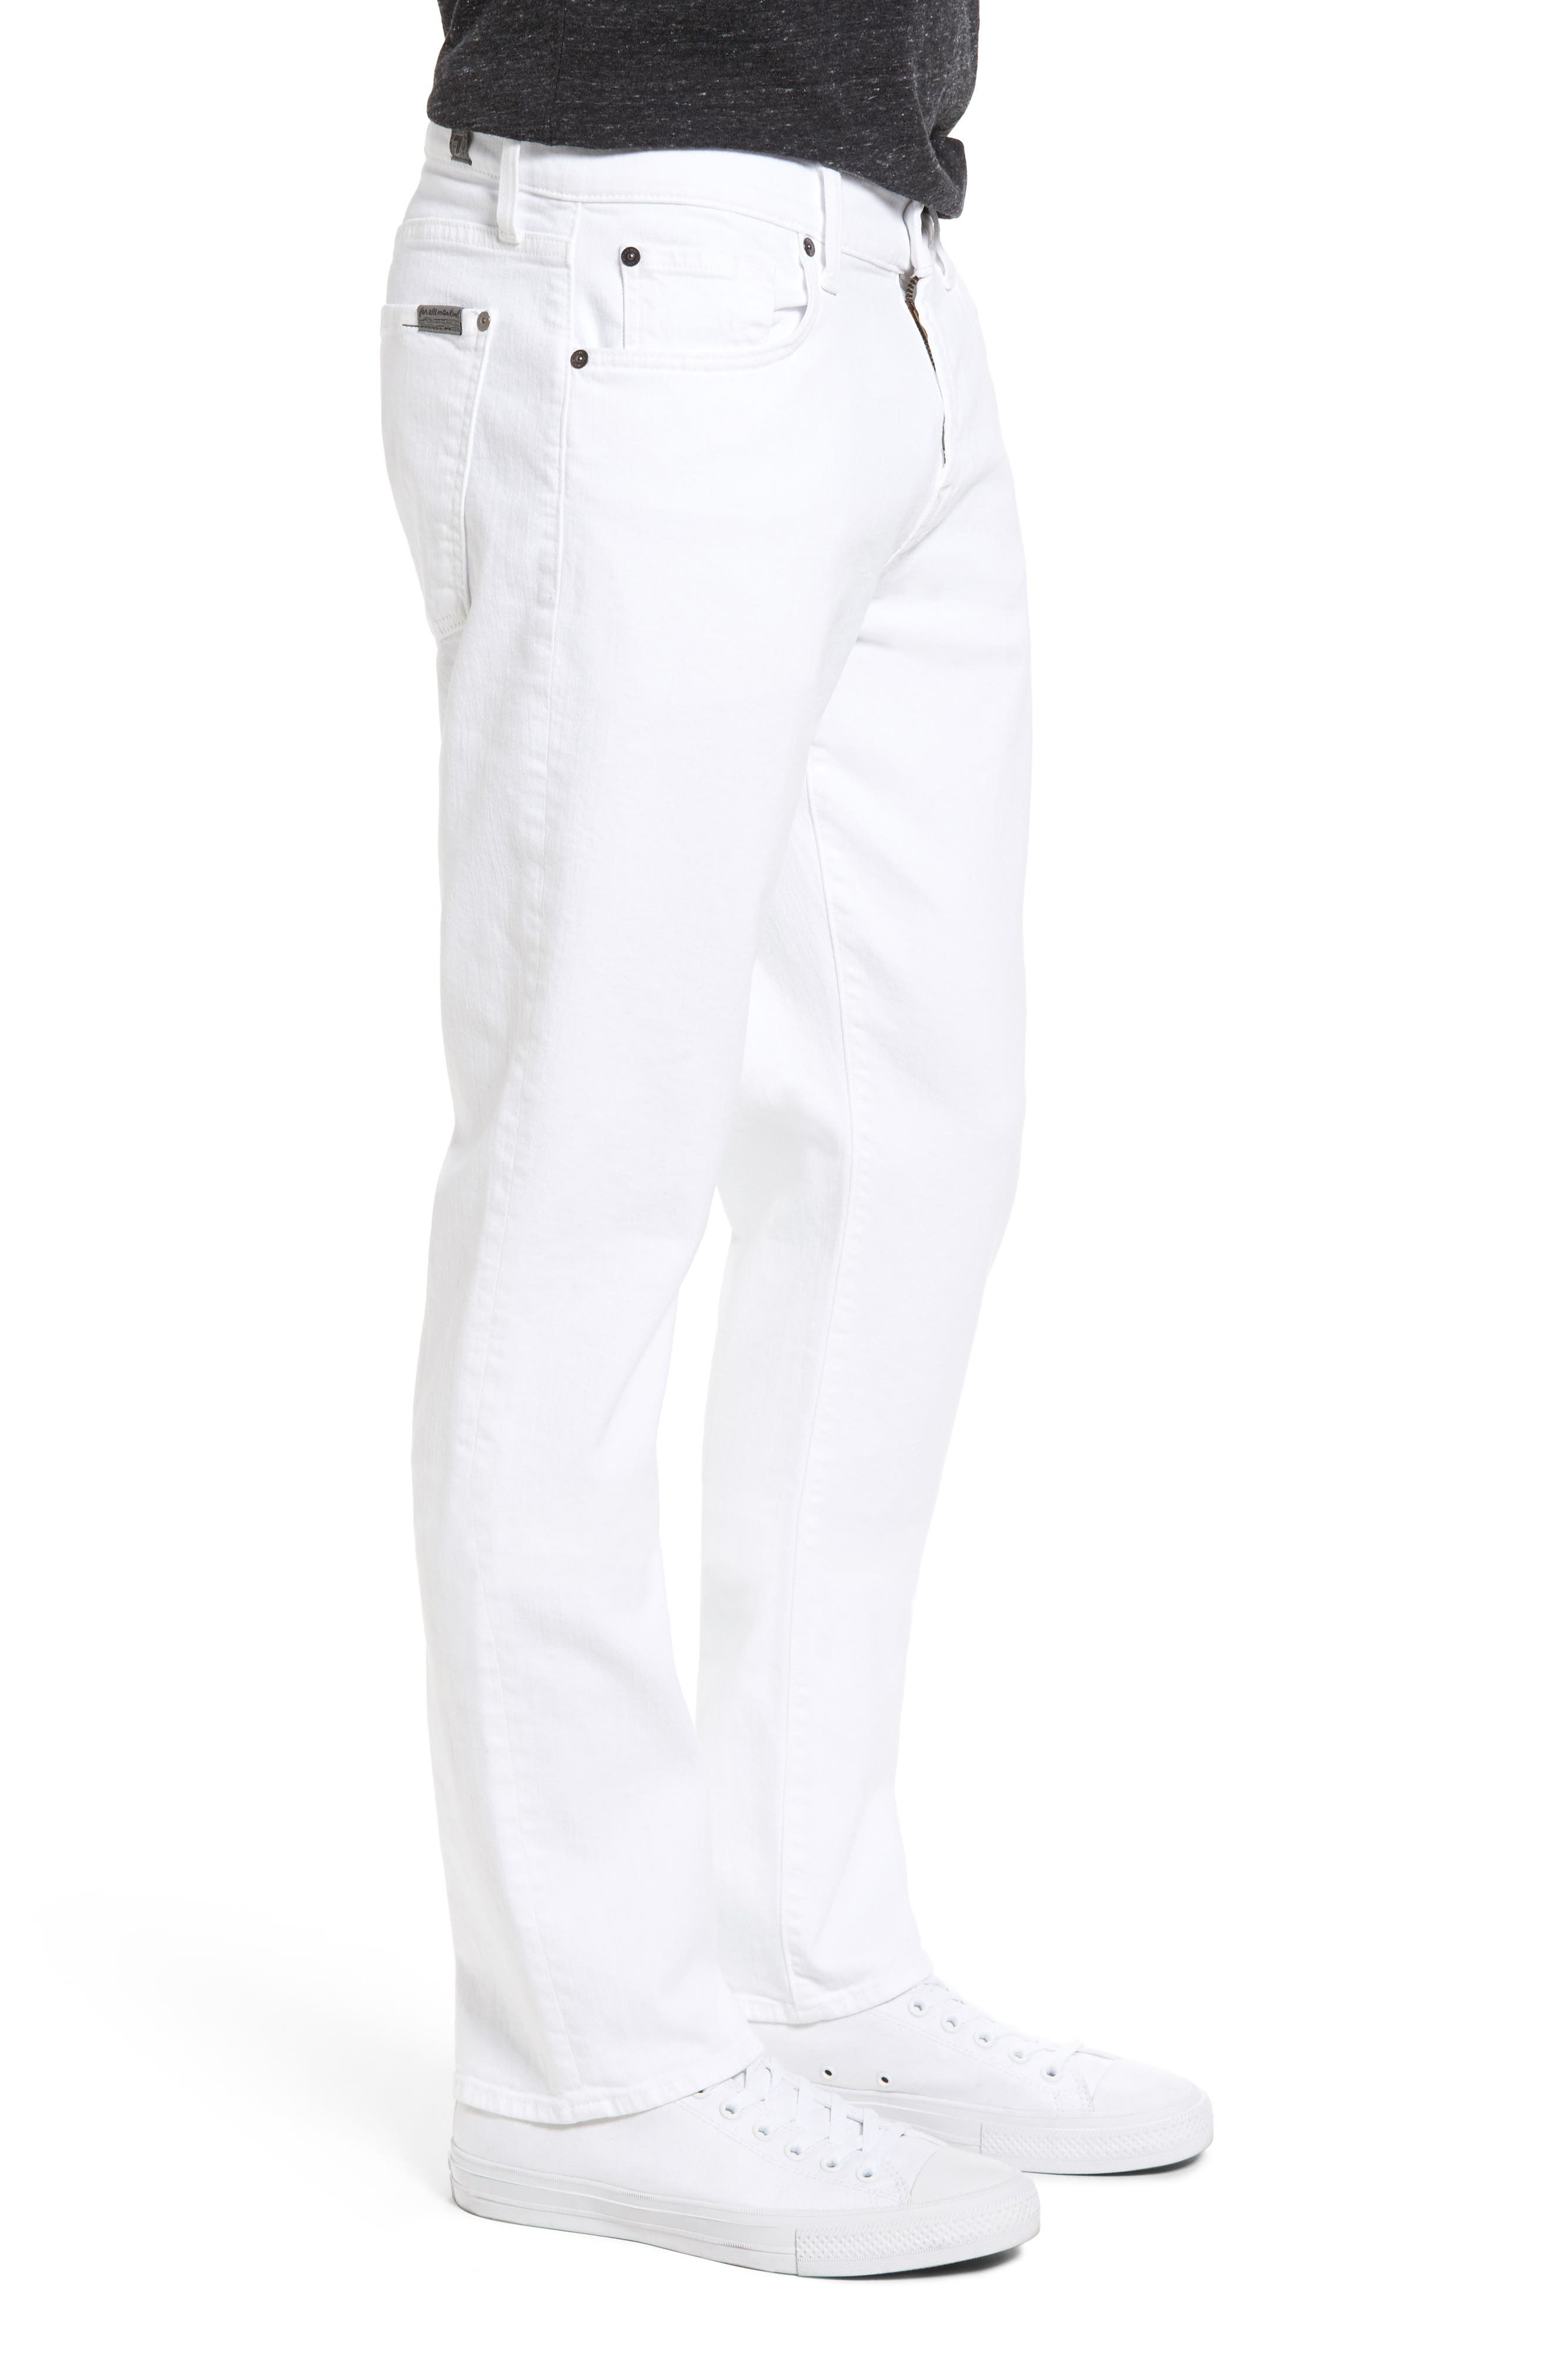 Luxe Performance - Slimmy Slim Fit Jeans,                             Alternate thumbnail 3, color,                             White